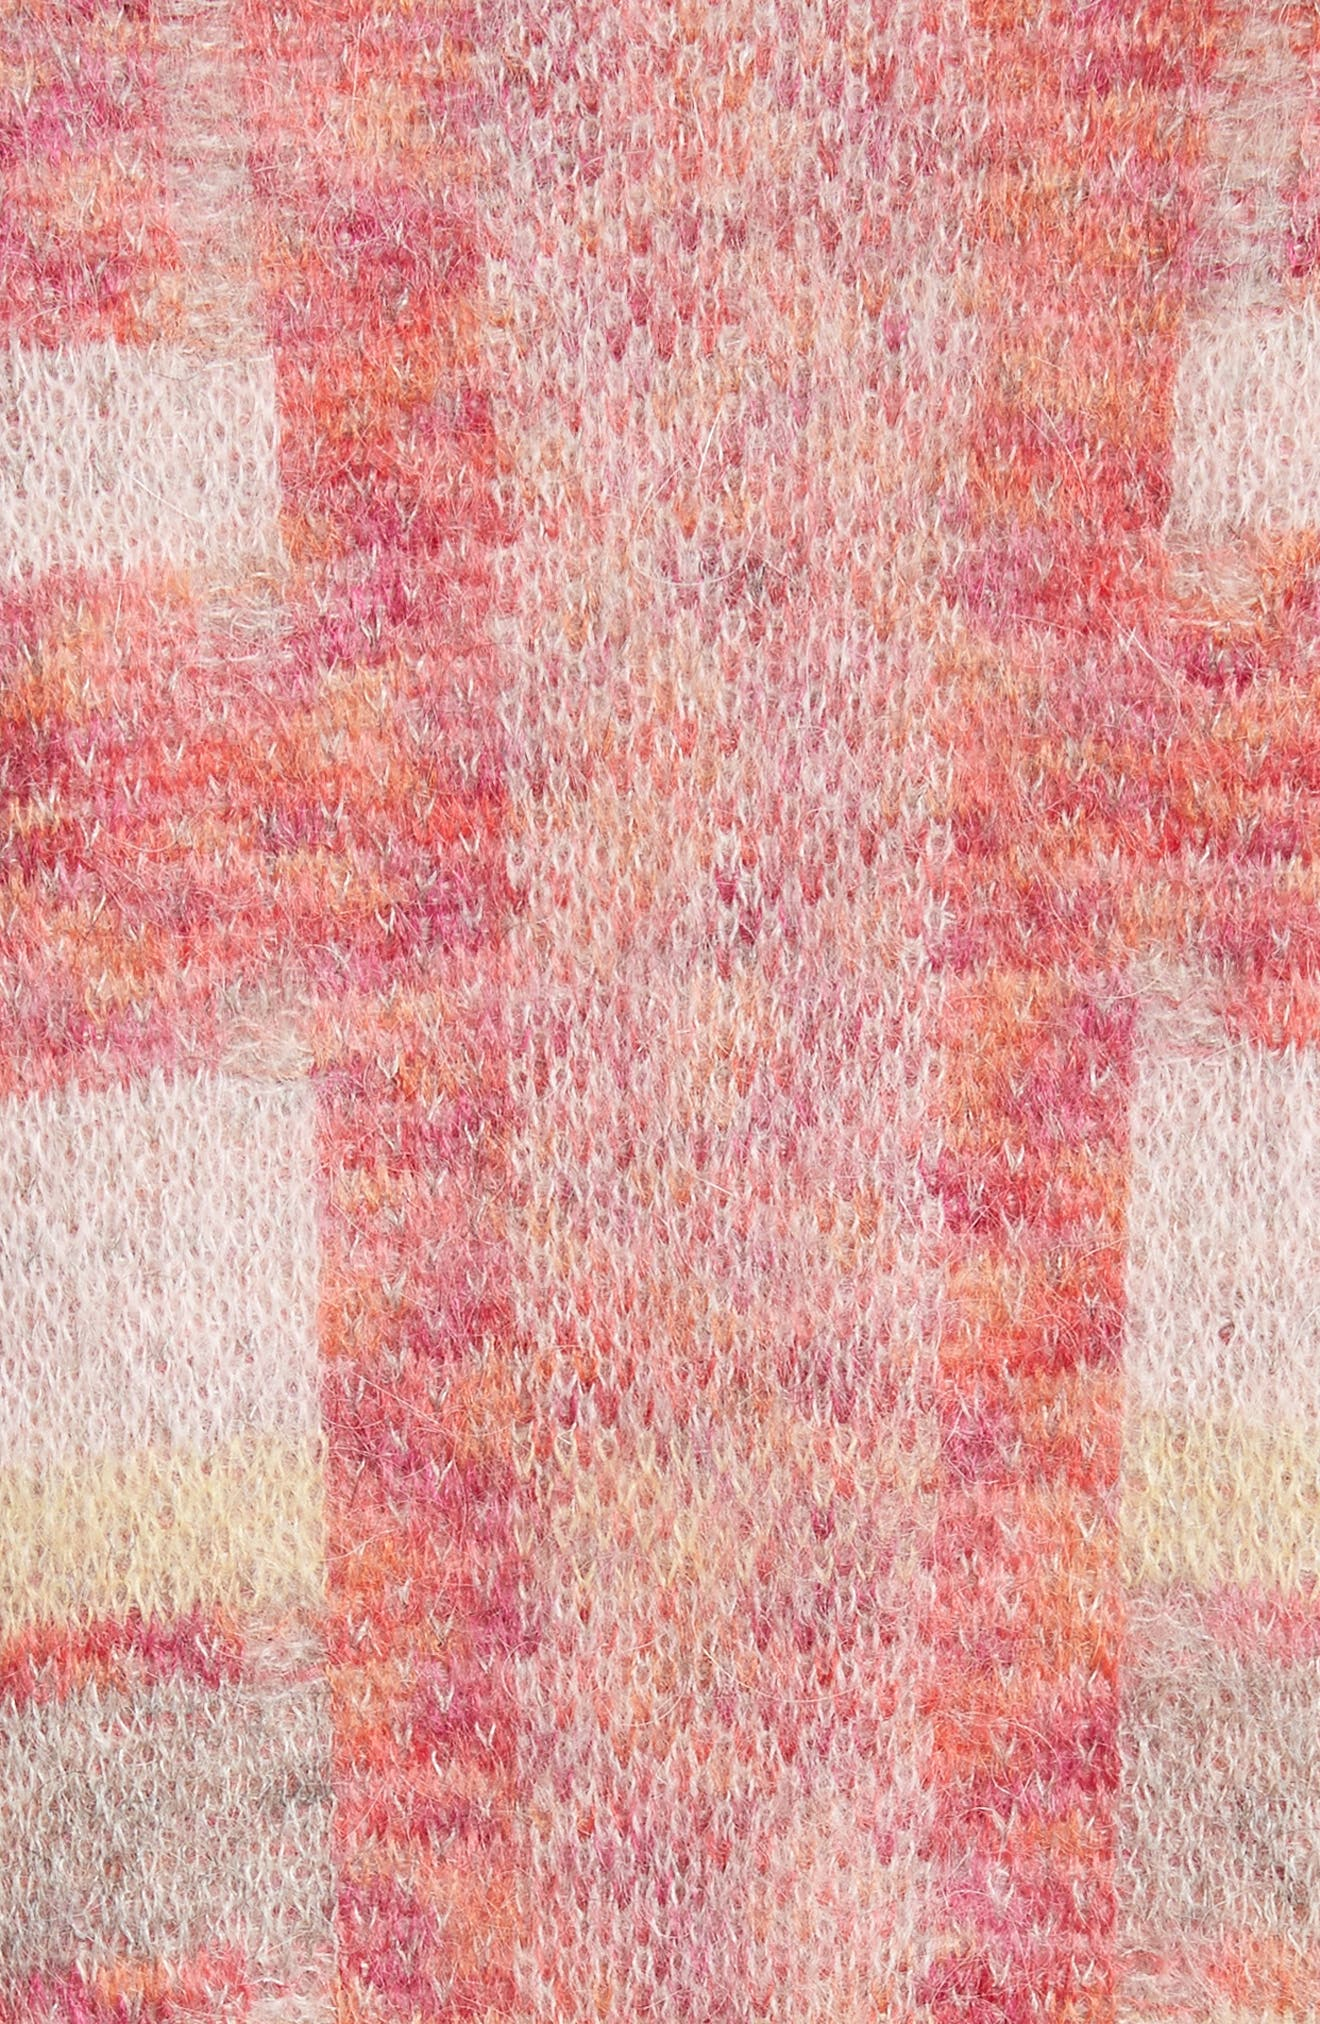 Lofty Knit Plaid Blanket Coat,                             Alternate thumbnail 5, color,                             Bright Coral Multi